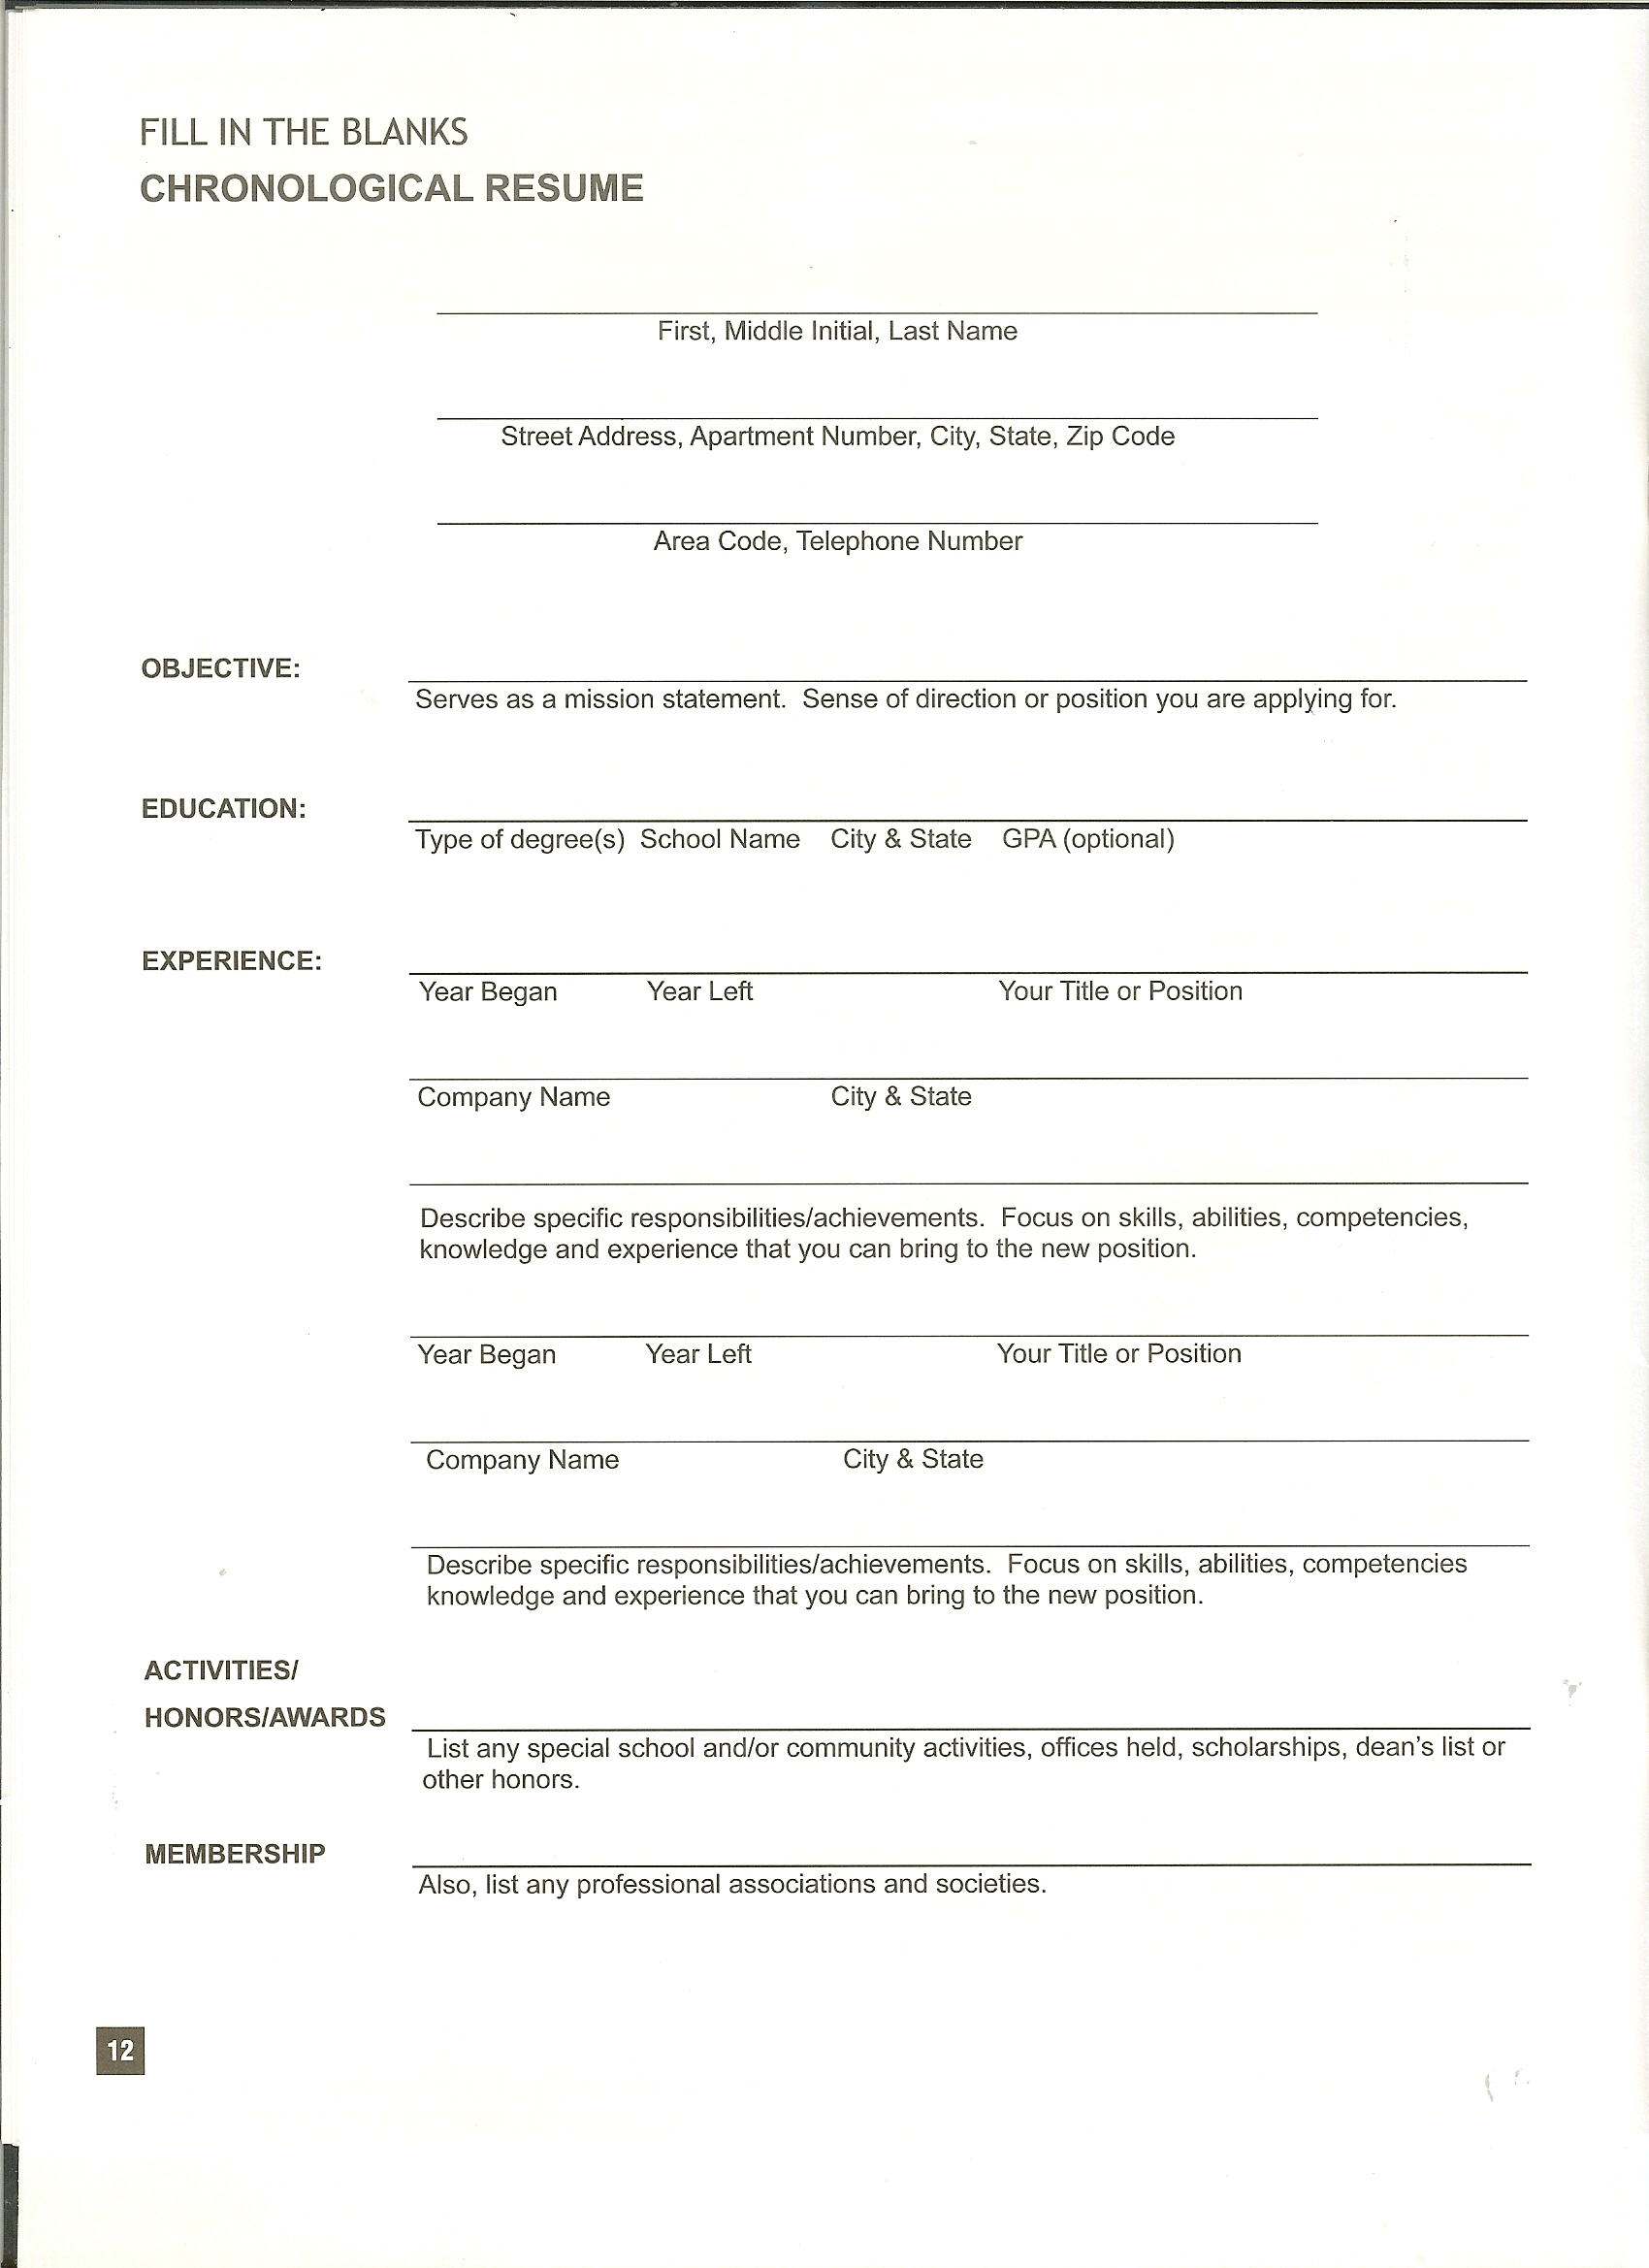 resume form exons tk category curriculum vitae